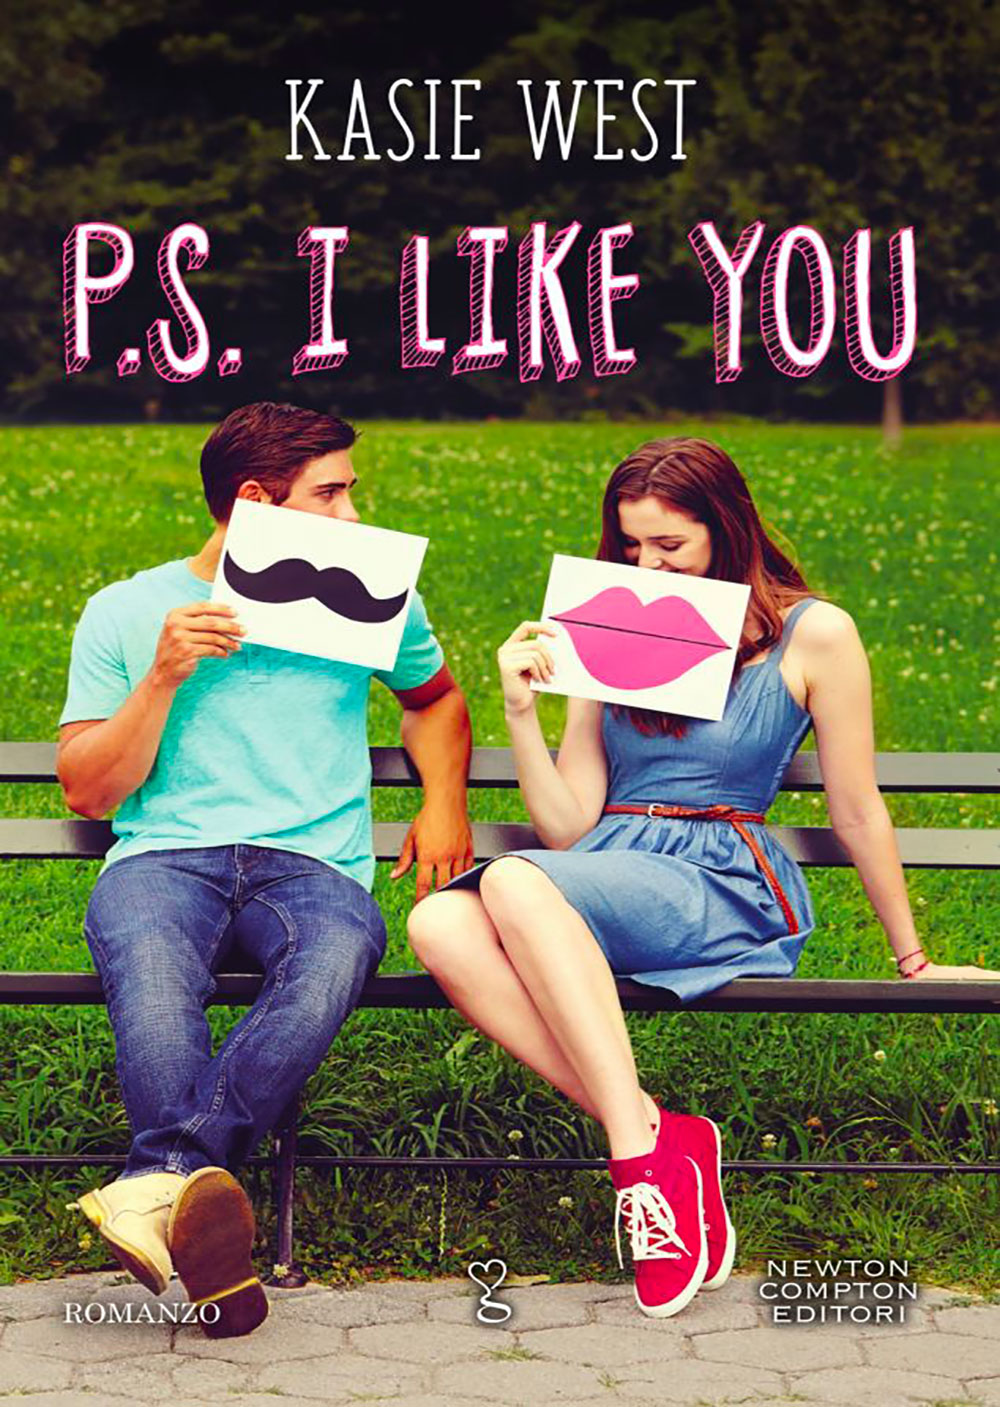 Recensioni 2017: P.S. I like you